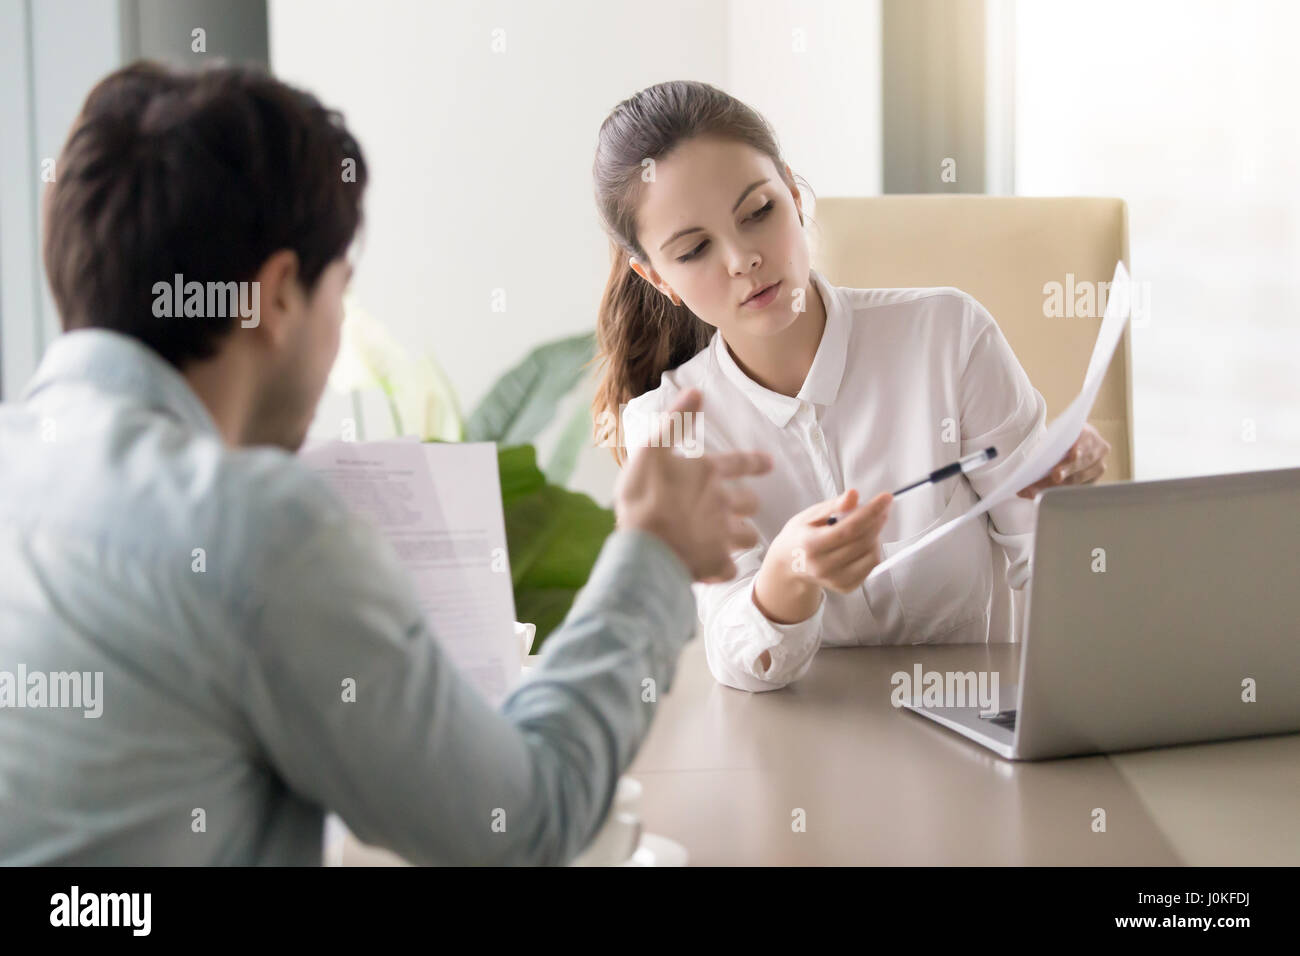 Conversation between businesswoman and businessman about documen - Stock Image